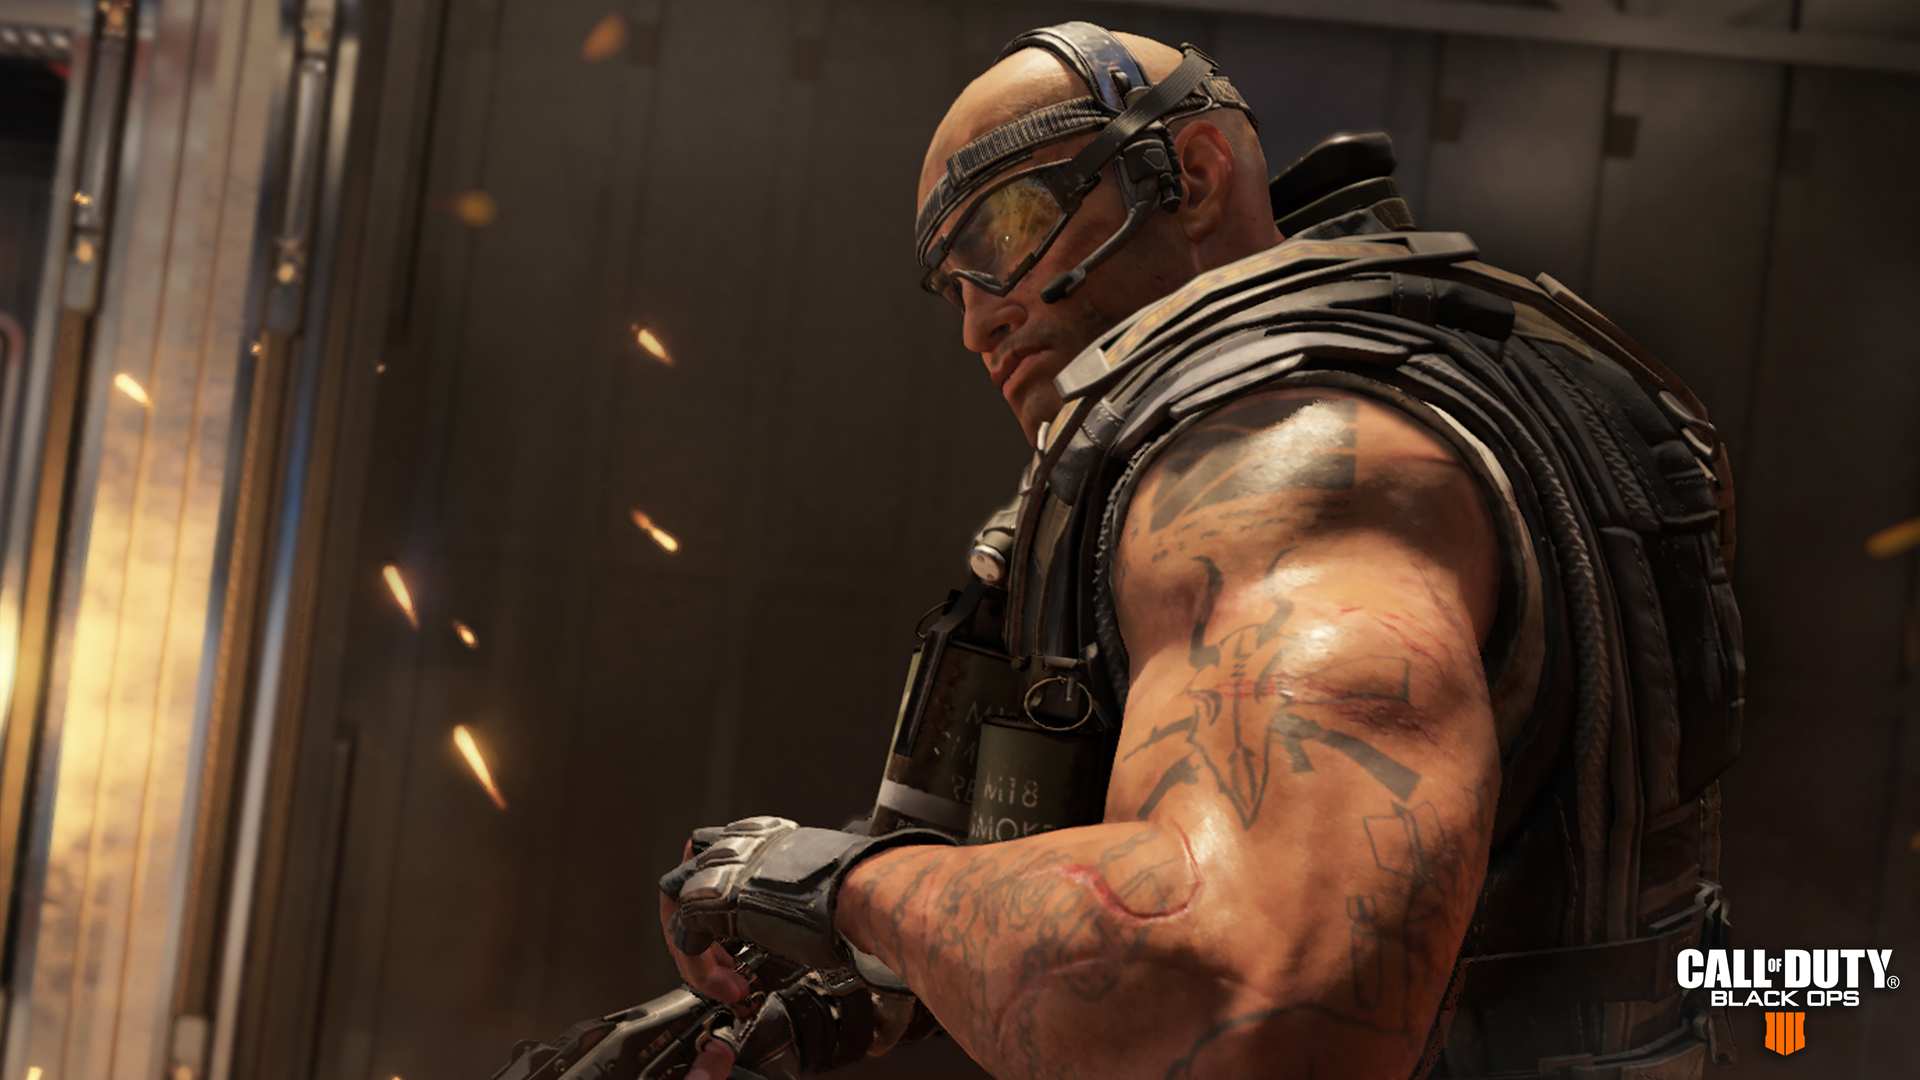 Call of Duty Black Ops 4 Screenshots #1 - Bild: Activision